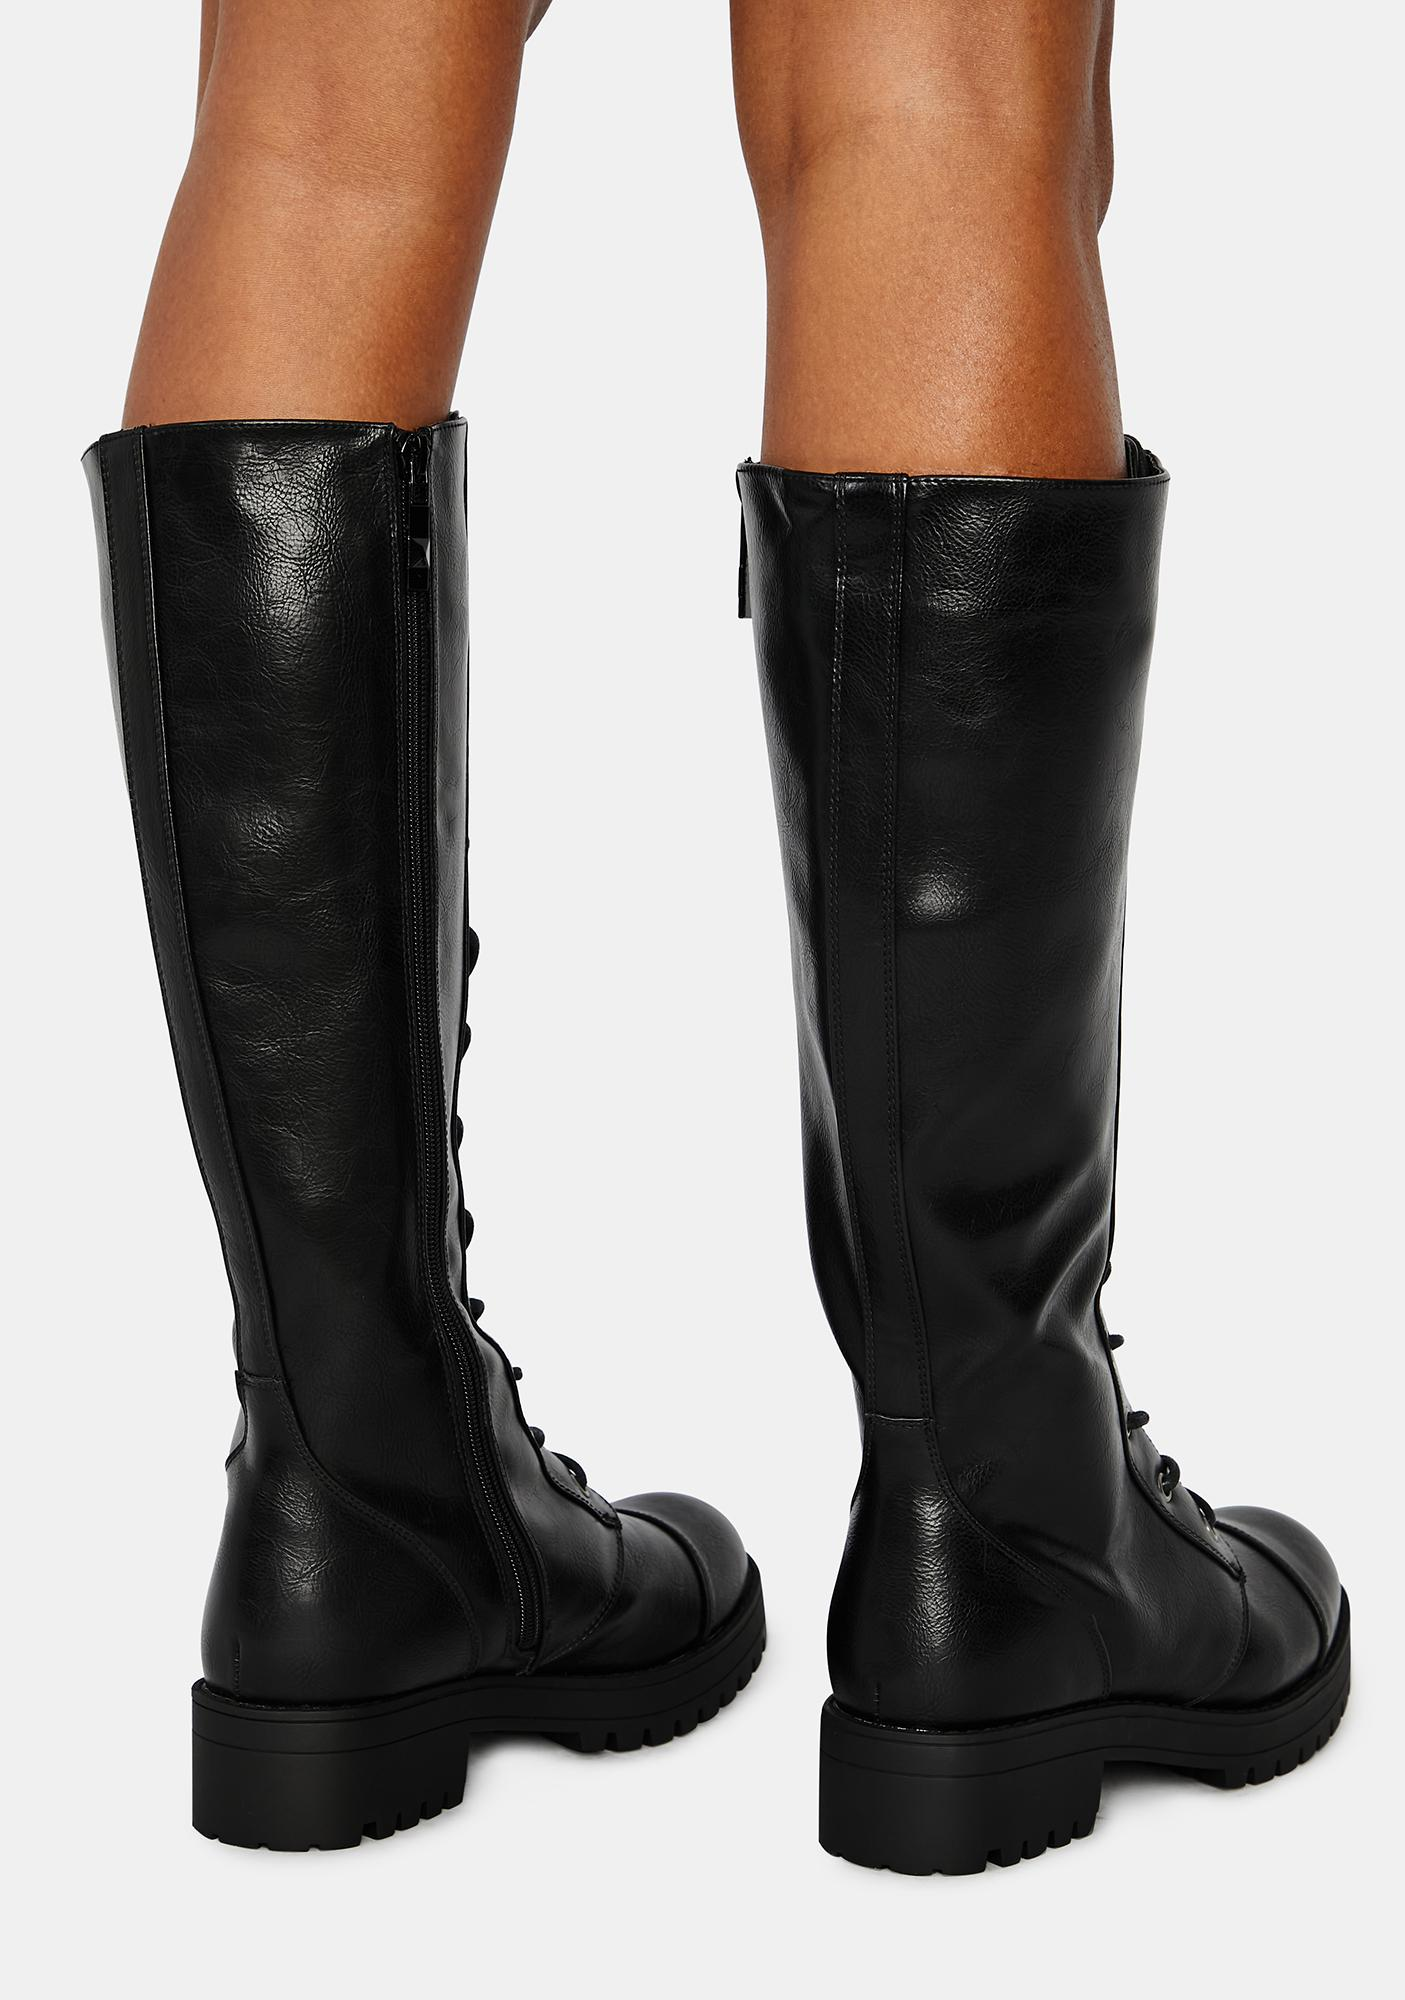 Dirty Laundry Vandal Tall Combat Boots